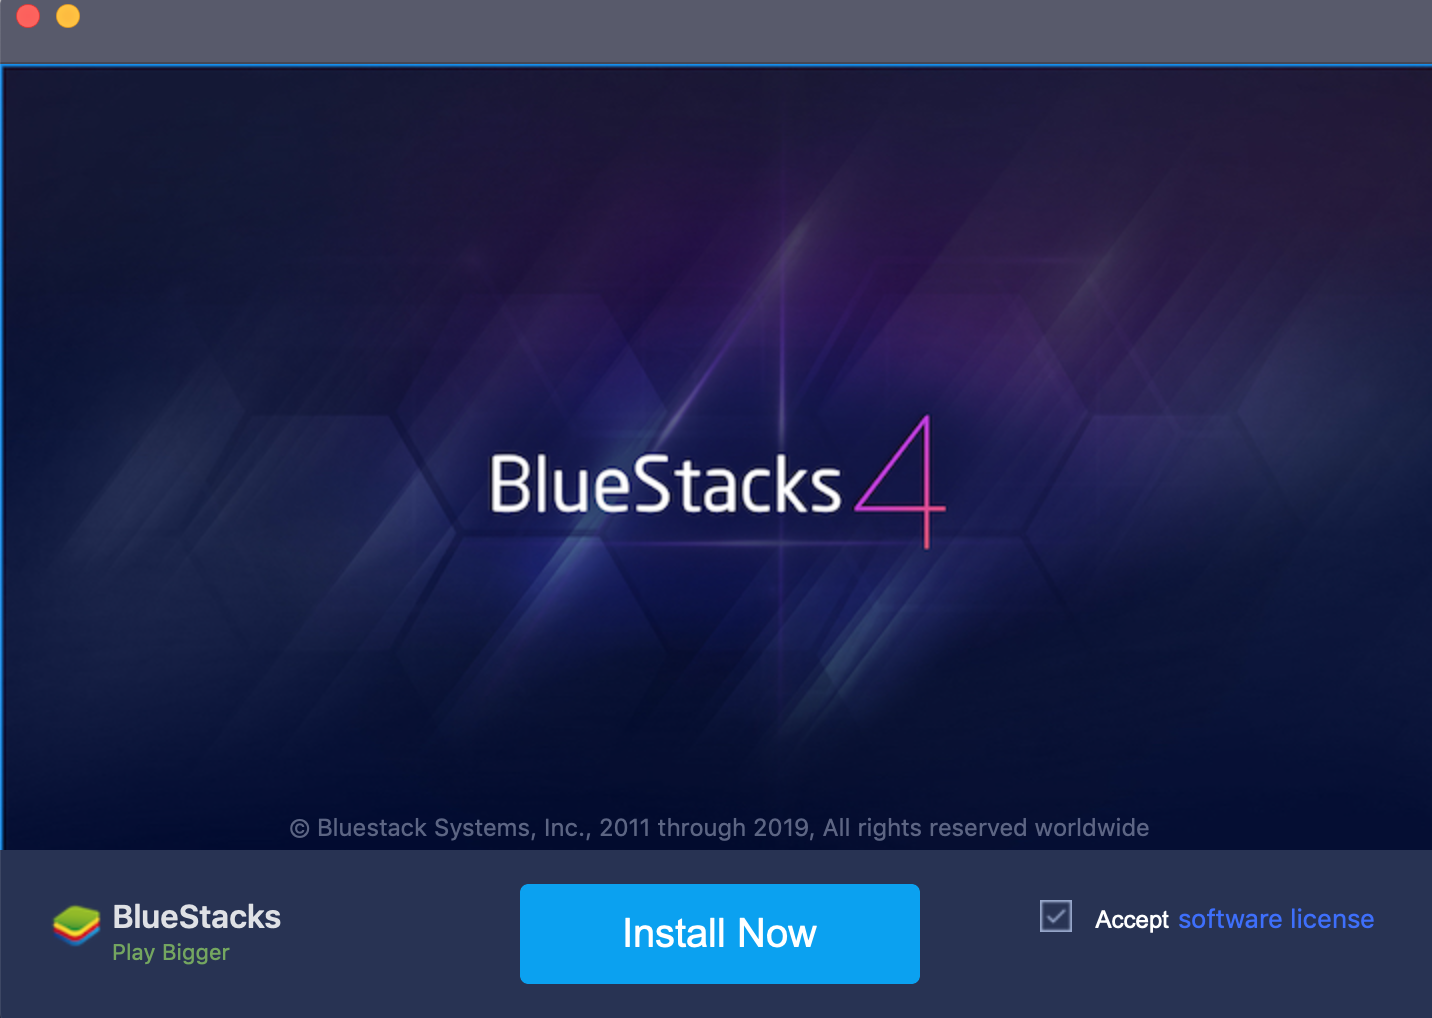 How can I Install and launch BlueStacks on Mac OS